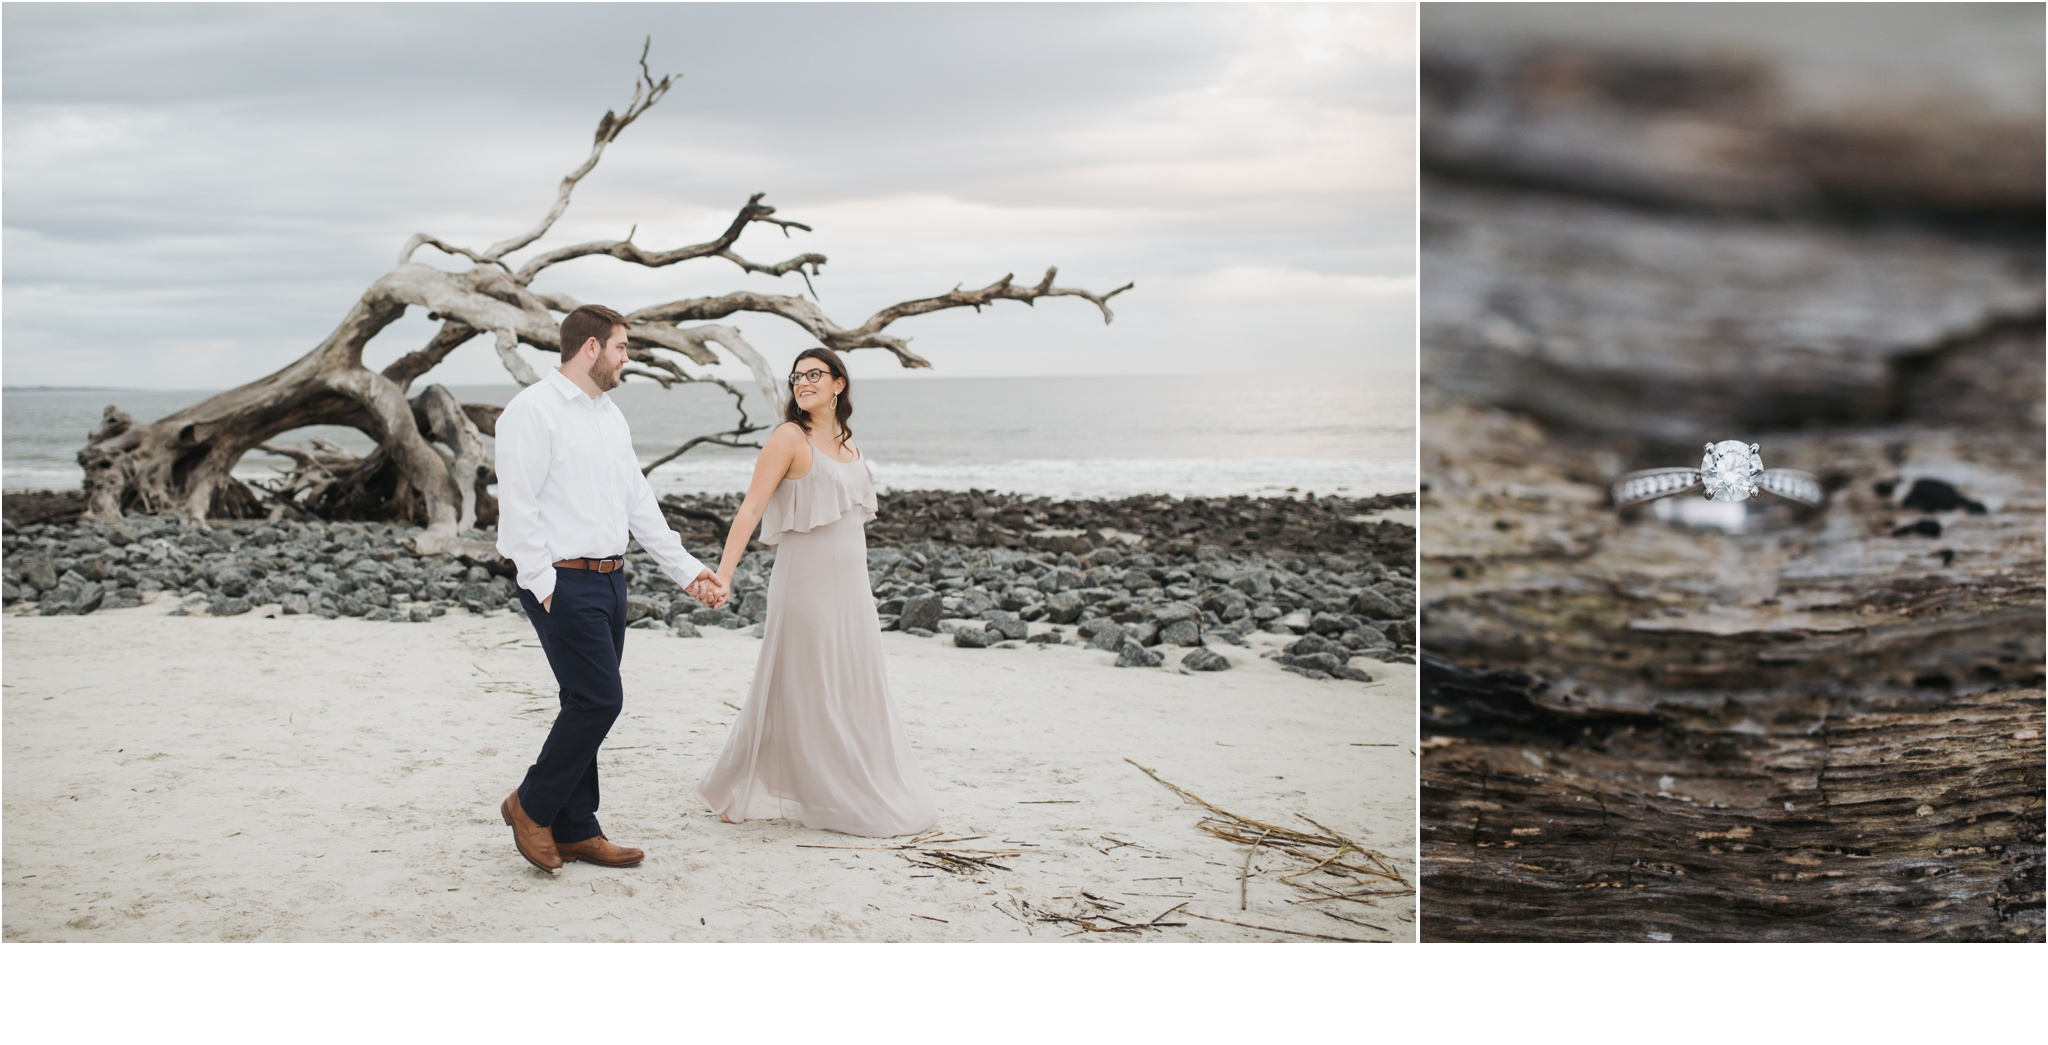 Rainey_Gregg_Photography_St._Simons_Island_Georgia_California_Wedding_Portrait_Photography_1597.jpg